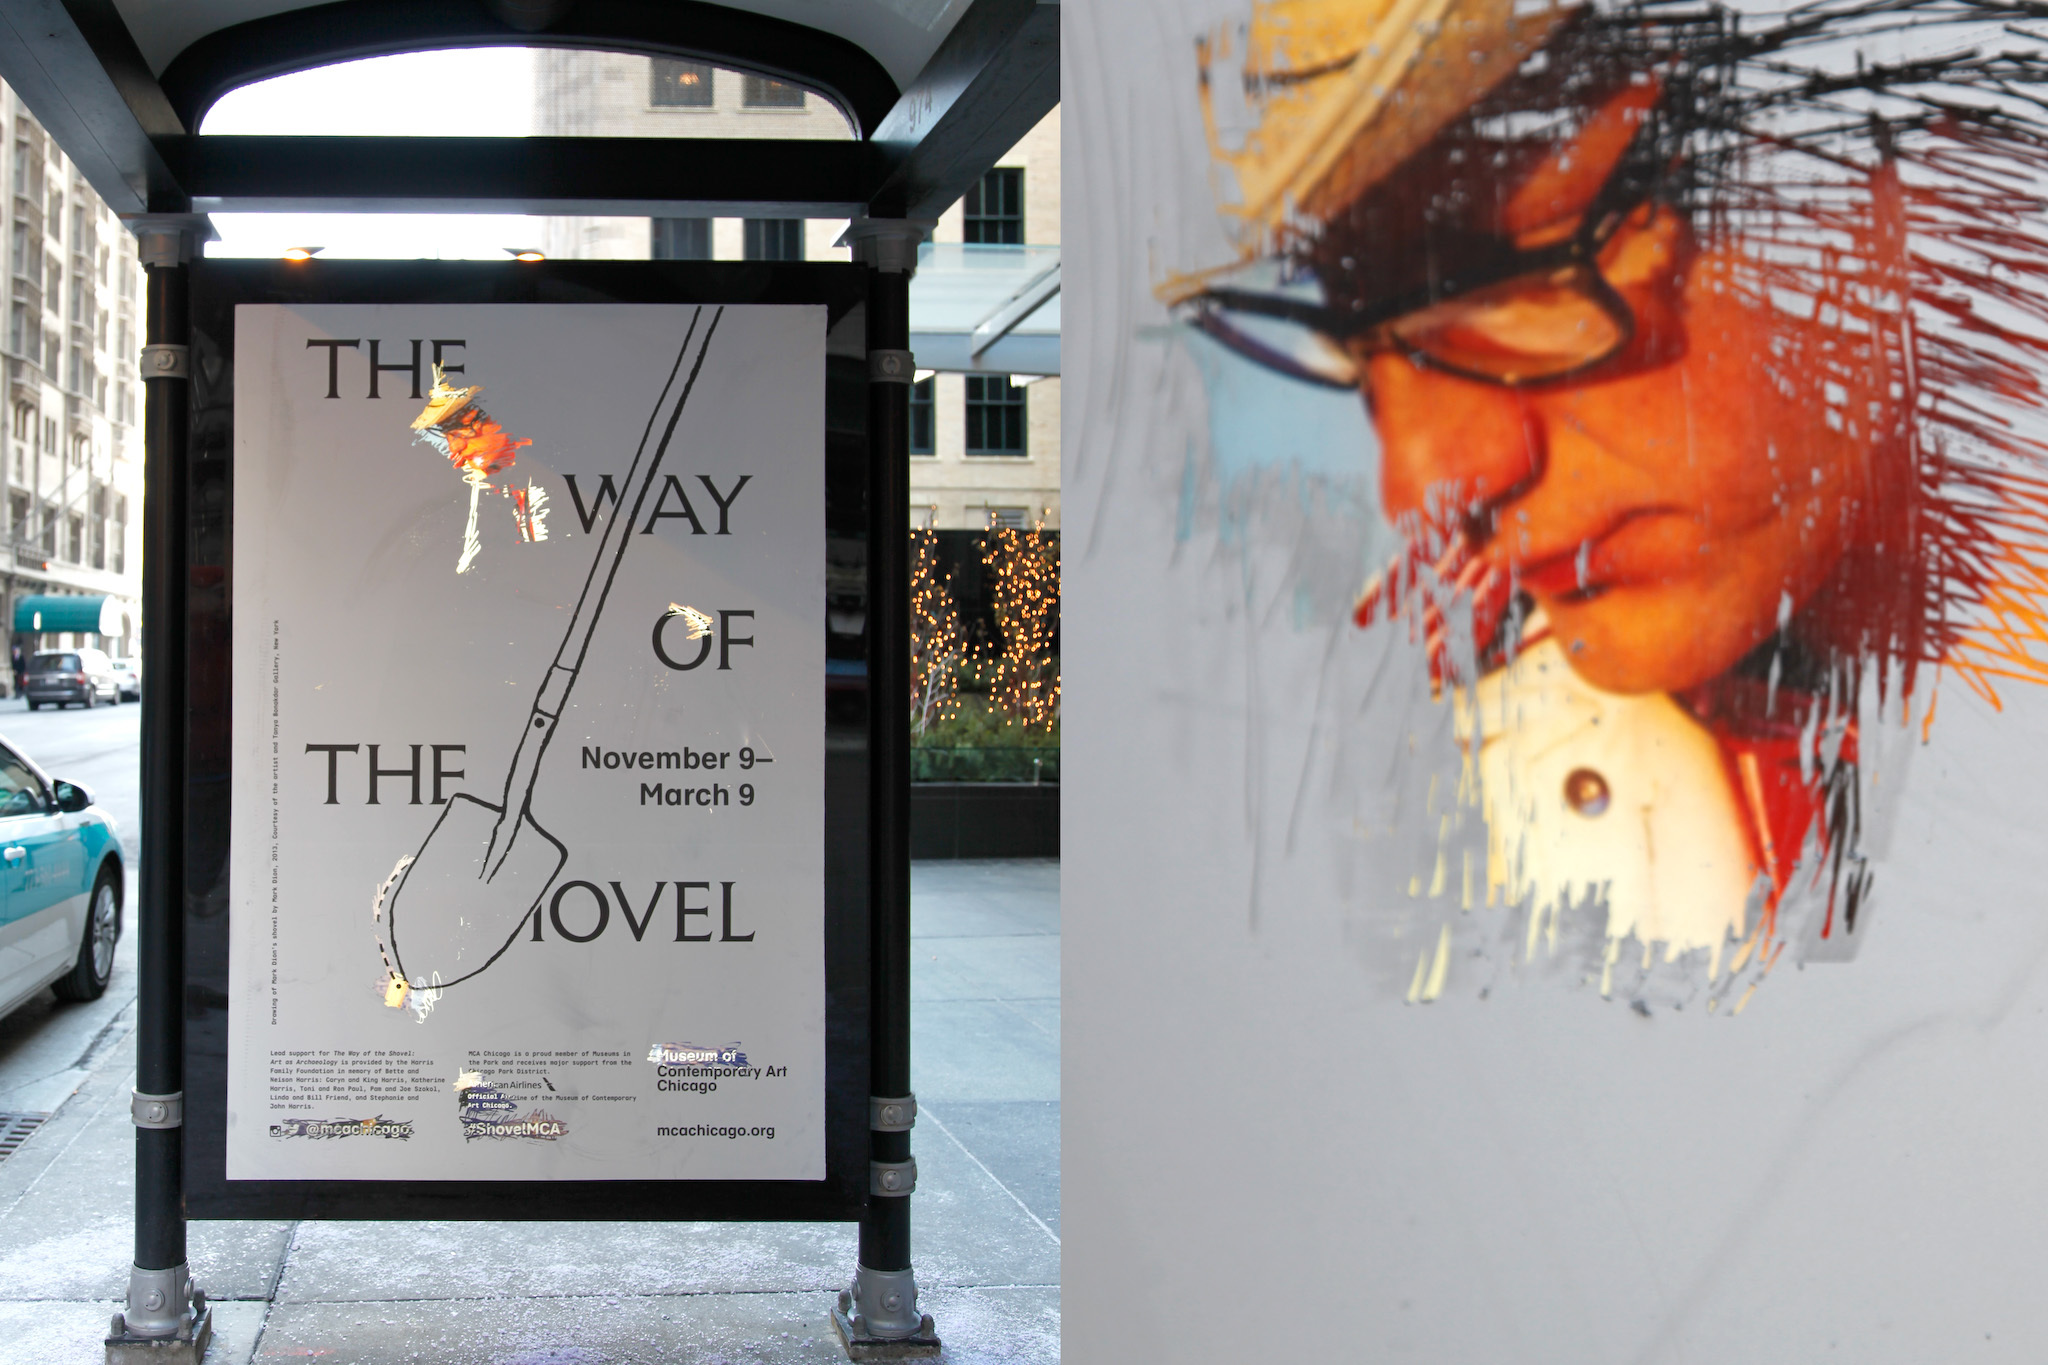 """The Way of the Shovel Scratch-off Poster"", Romain André and Michael Savona, shovel illustration on the top layer by Mark Dion, uncovered photograph by Tony Tasset"